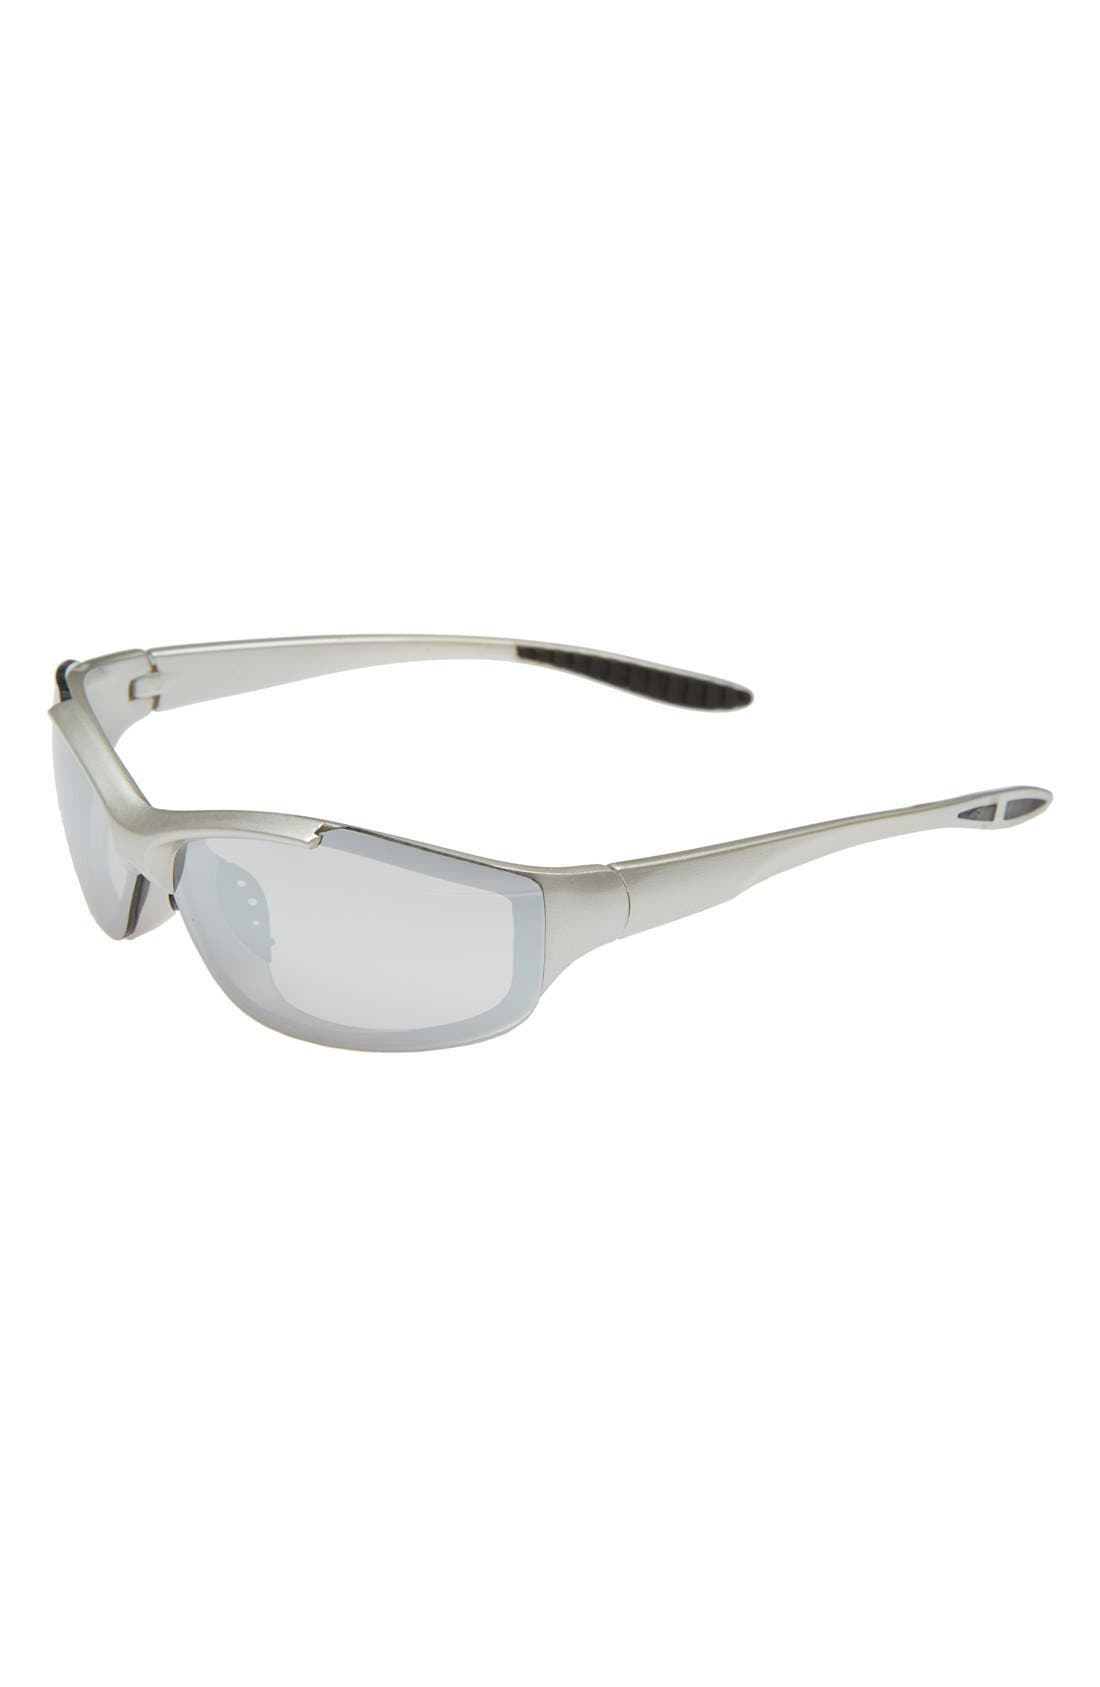 Alternate Image 1 Selected - Icon Eyewear 'Ryan' Wrap Sunglasses (Boys)